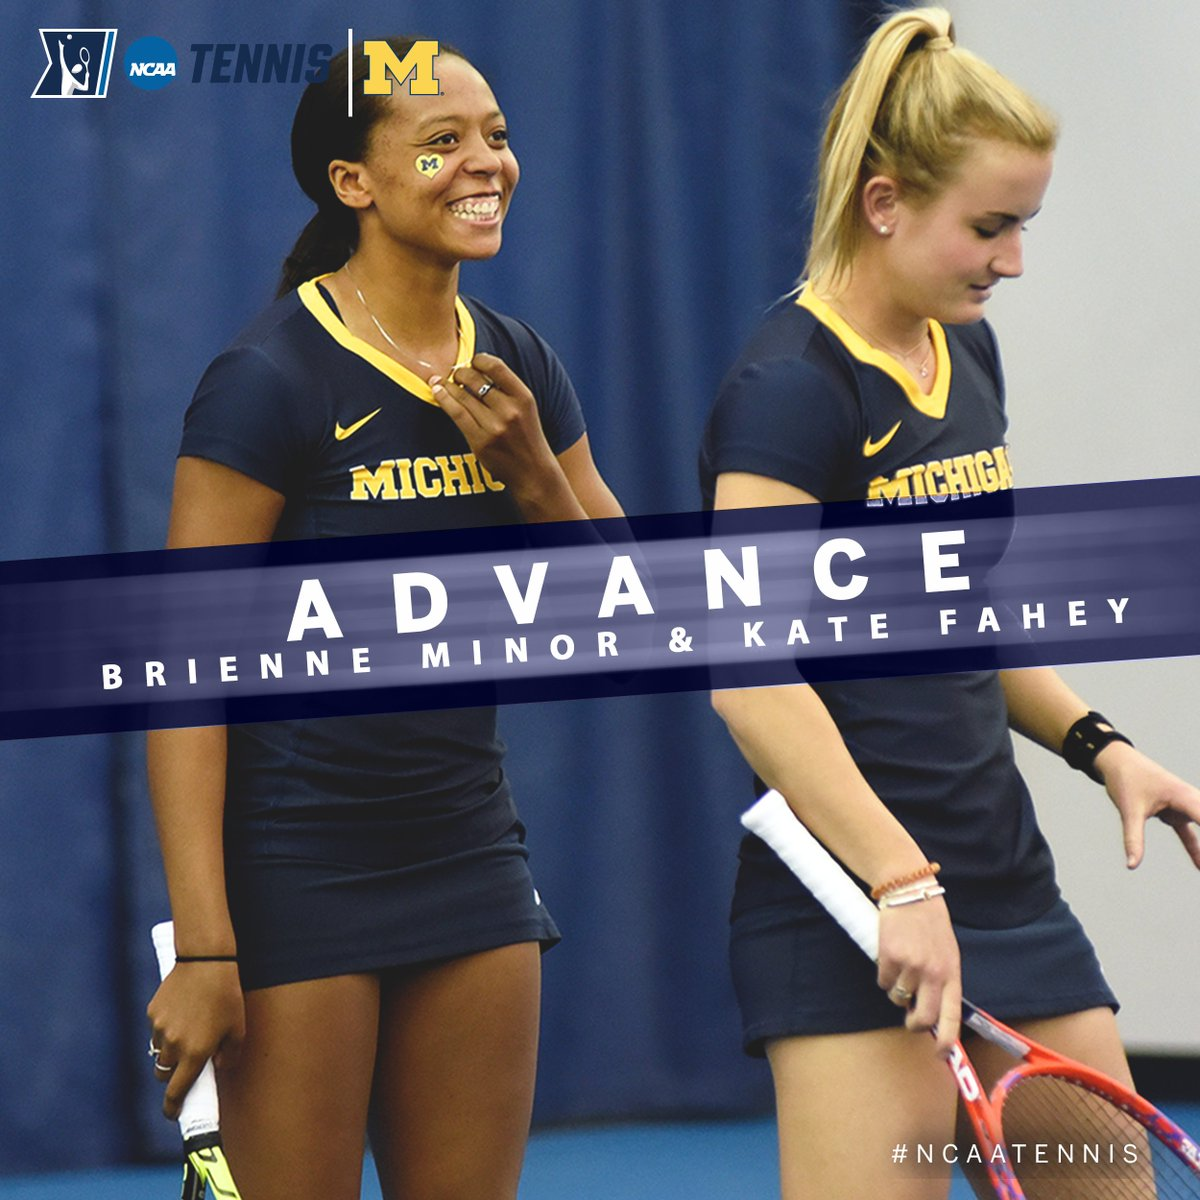 In the First Round of the @NCAATennis Women's Doubles Championship, Kate Fahey & Brienne Minor of @UMichWTennis advanced to the Second Round with a 6-1, 6-2 win over a pair from Virginia. #B1GWTennis